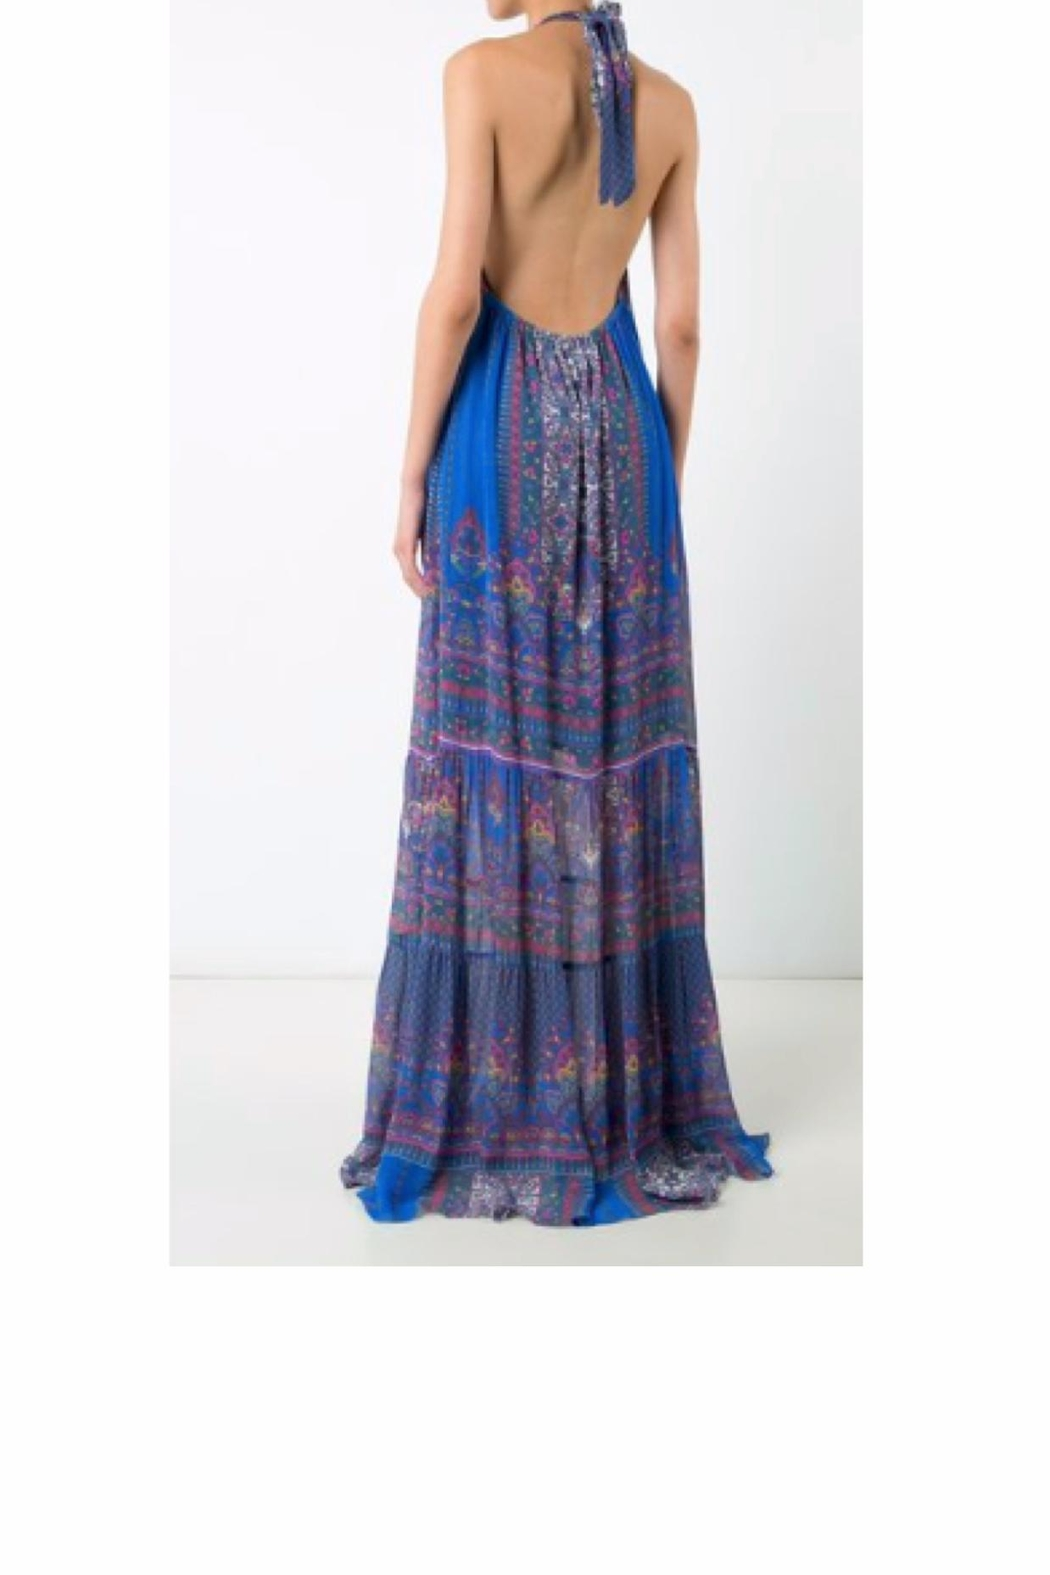 Nicole Miller Abstract Maxi Dress - Front Full Image